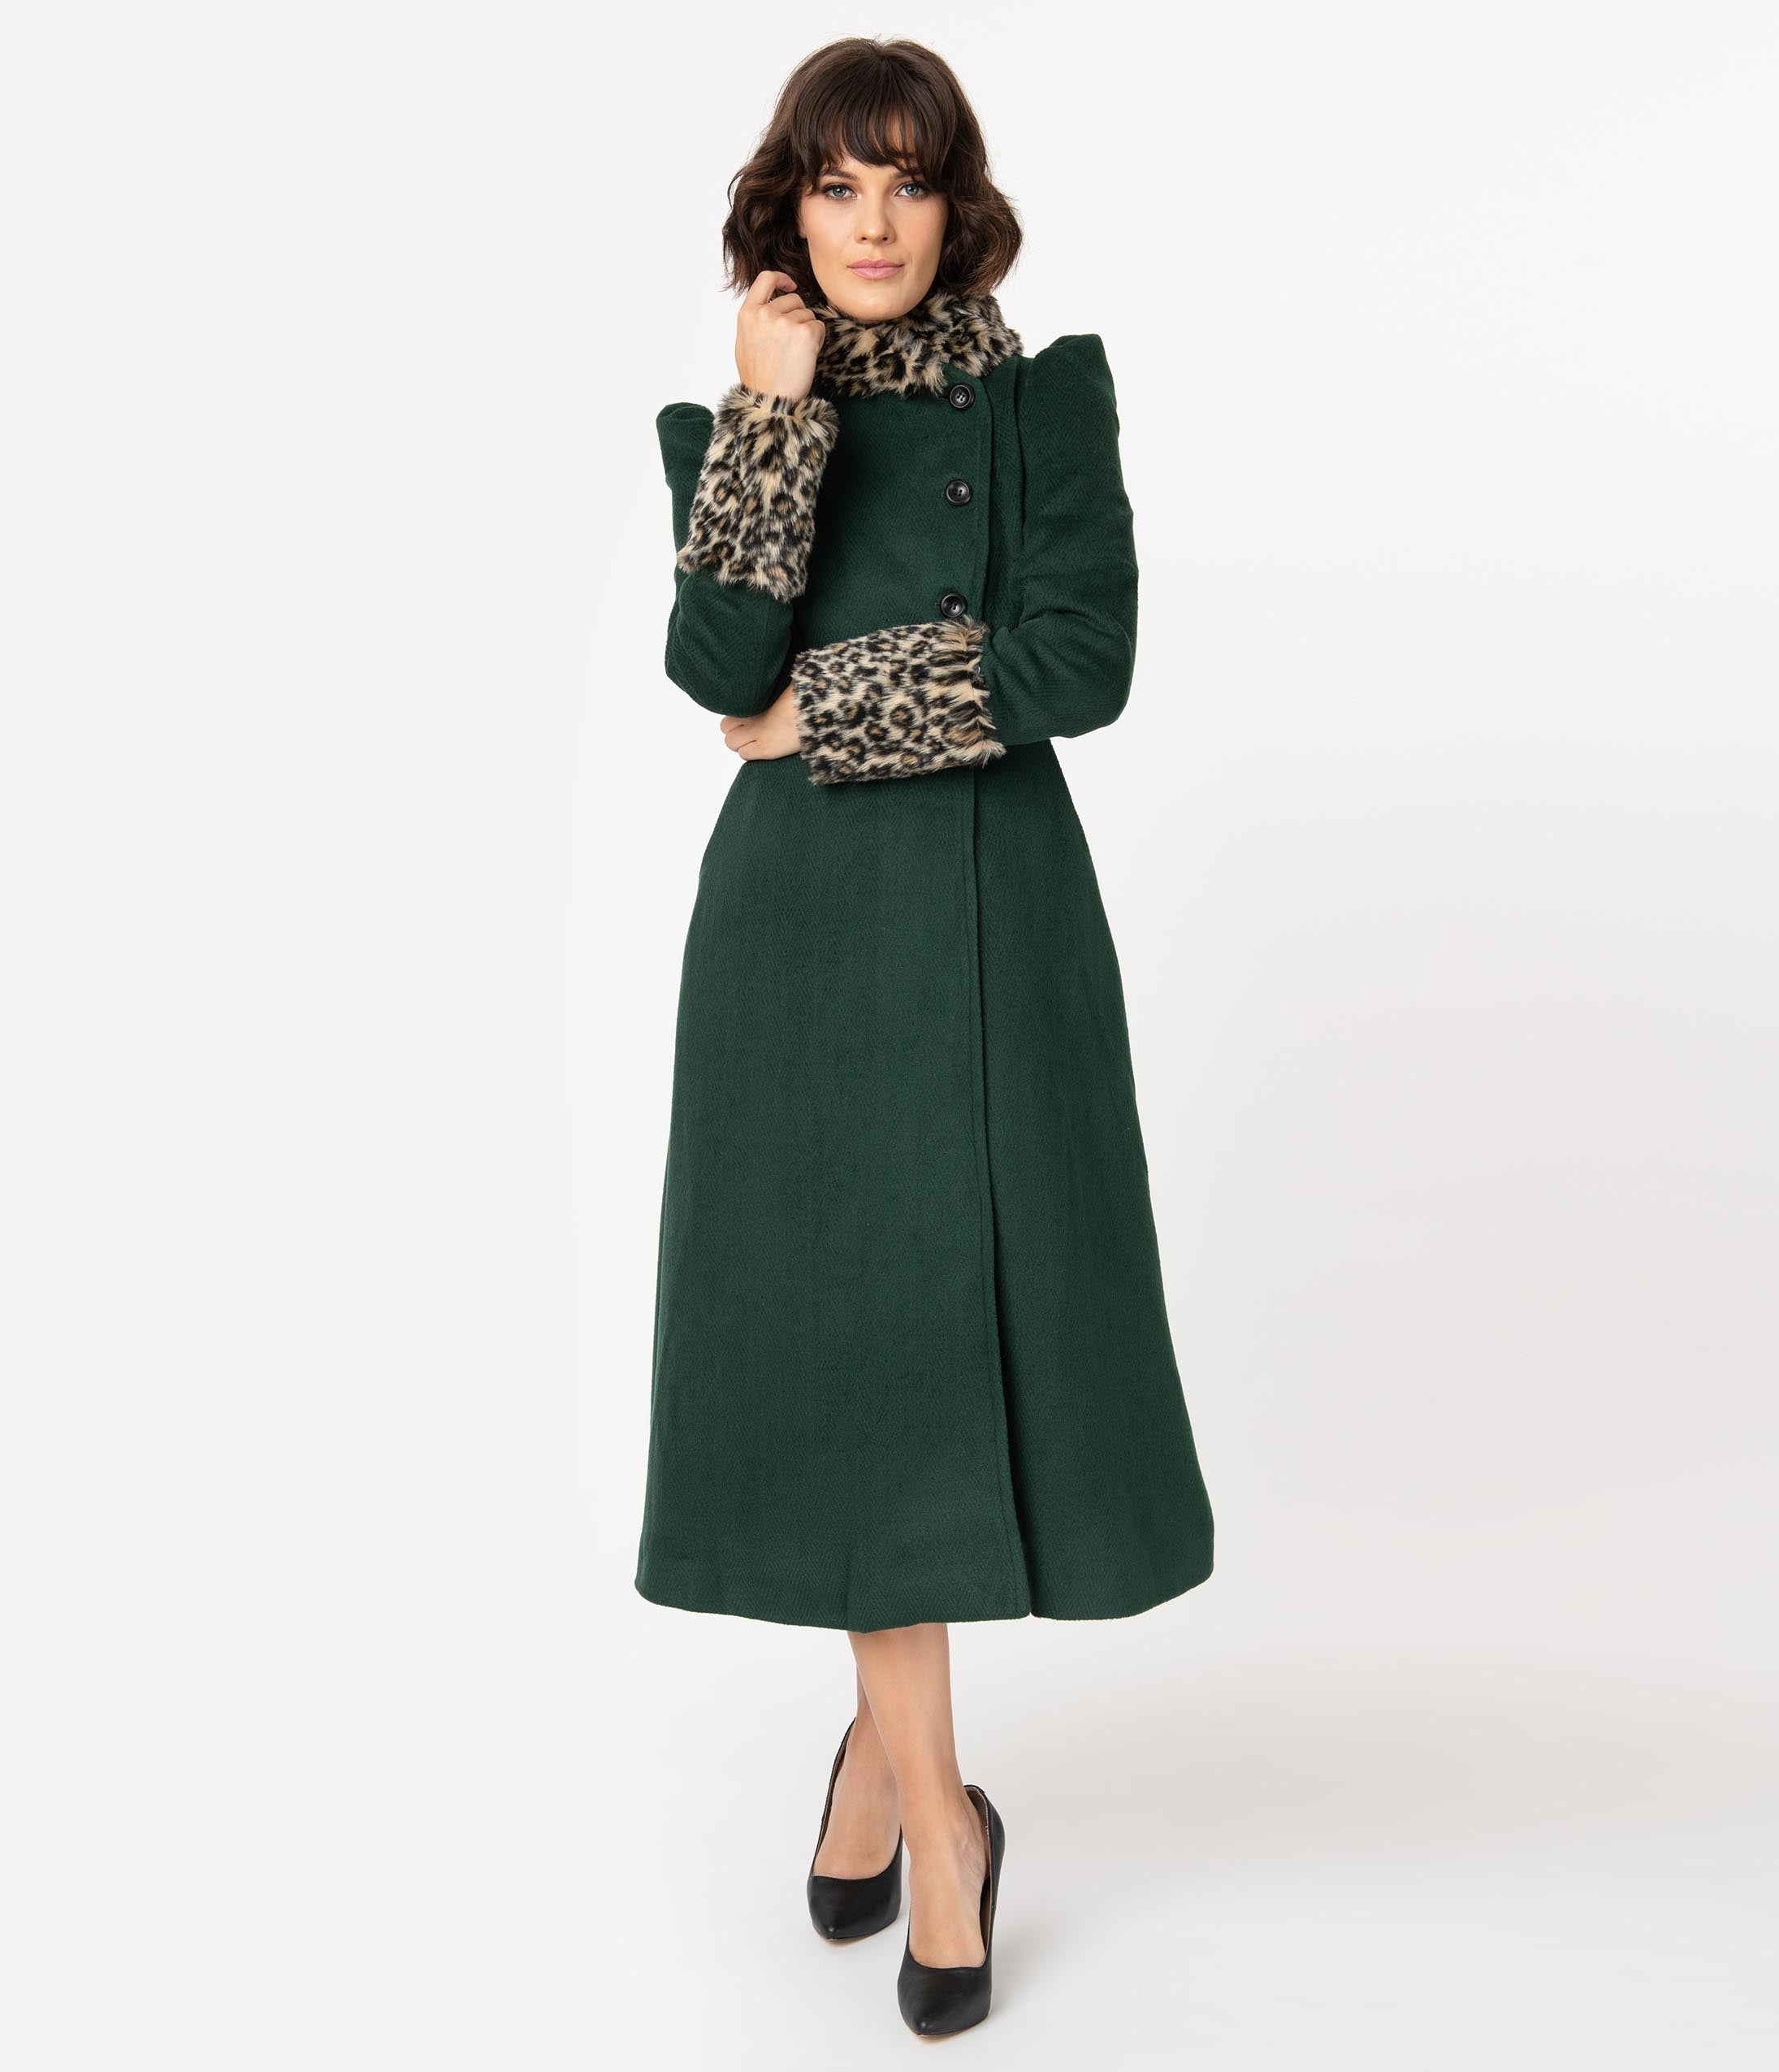 1940s Style Coats and Jackets for Sale Voodoo Vixen 1940S Emerald Green  Leopard Fur Long Coat $172.00 AT vintagedancer.com